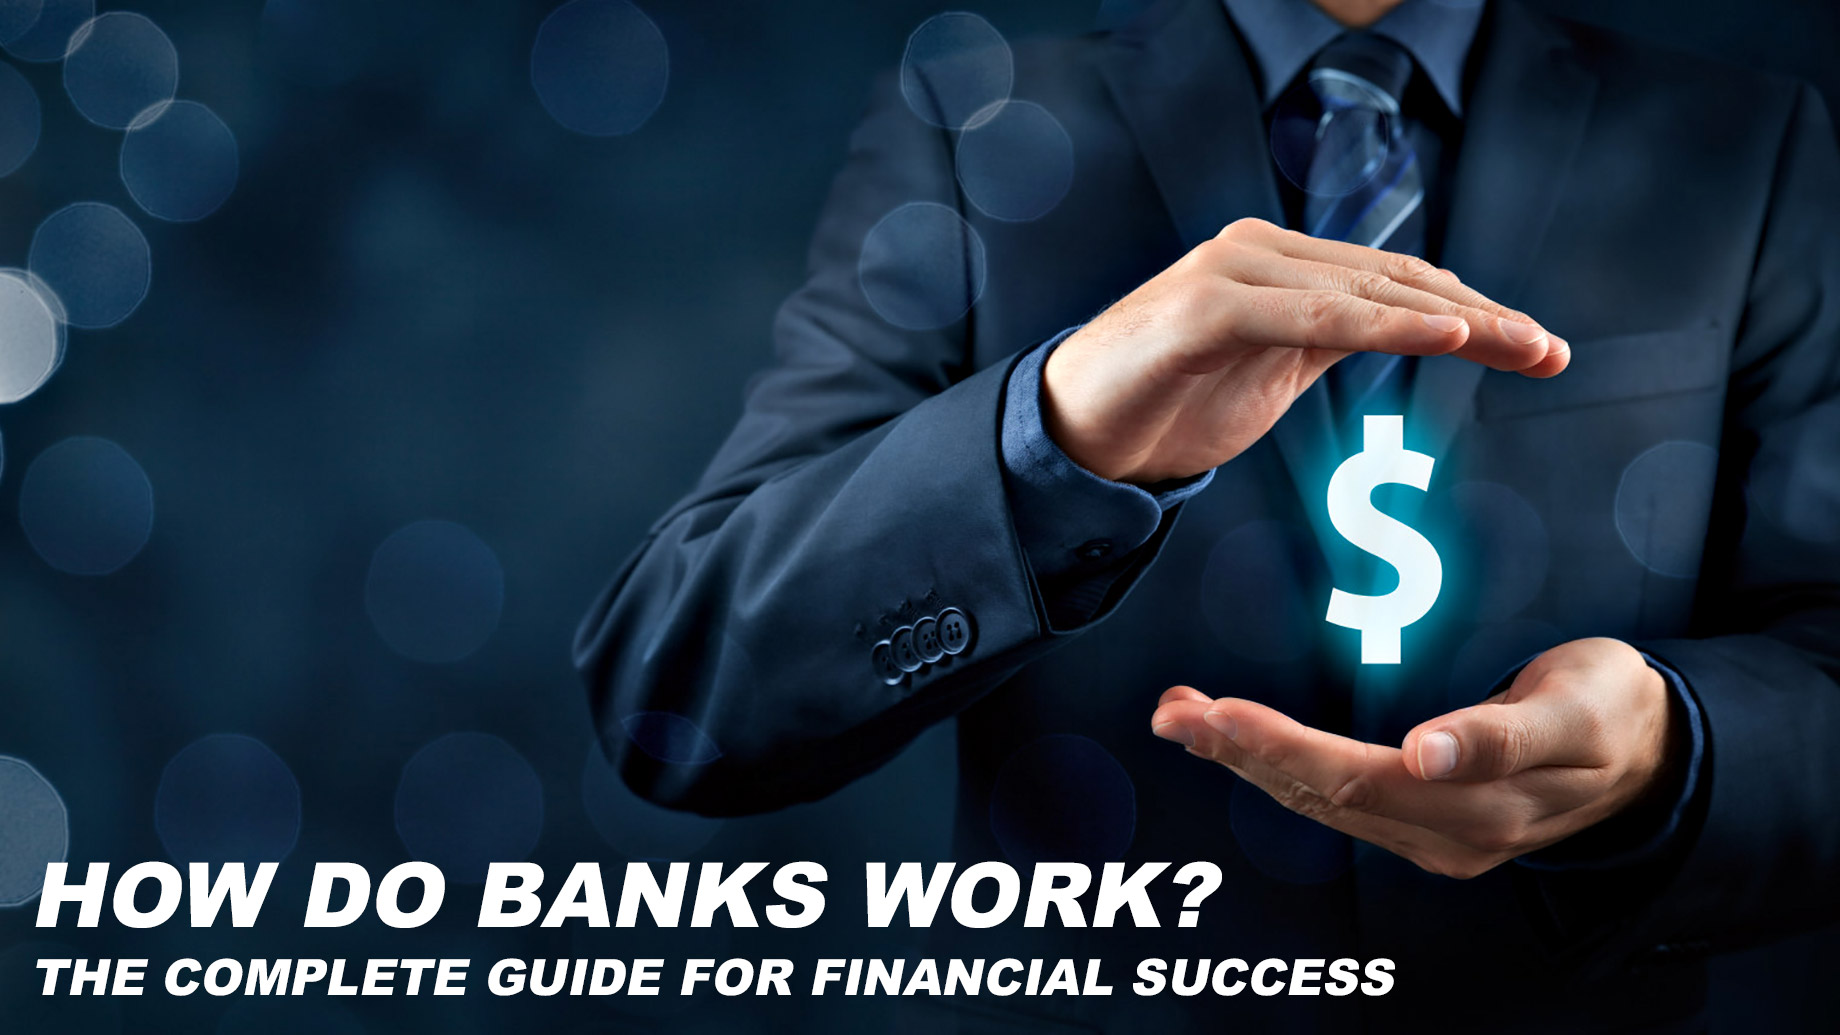 How Do Banks Work - The Complete Guide for Financial Success